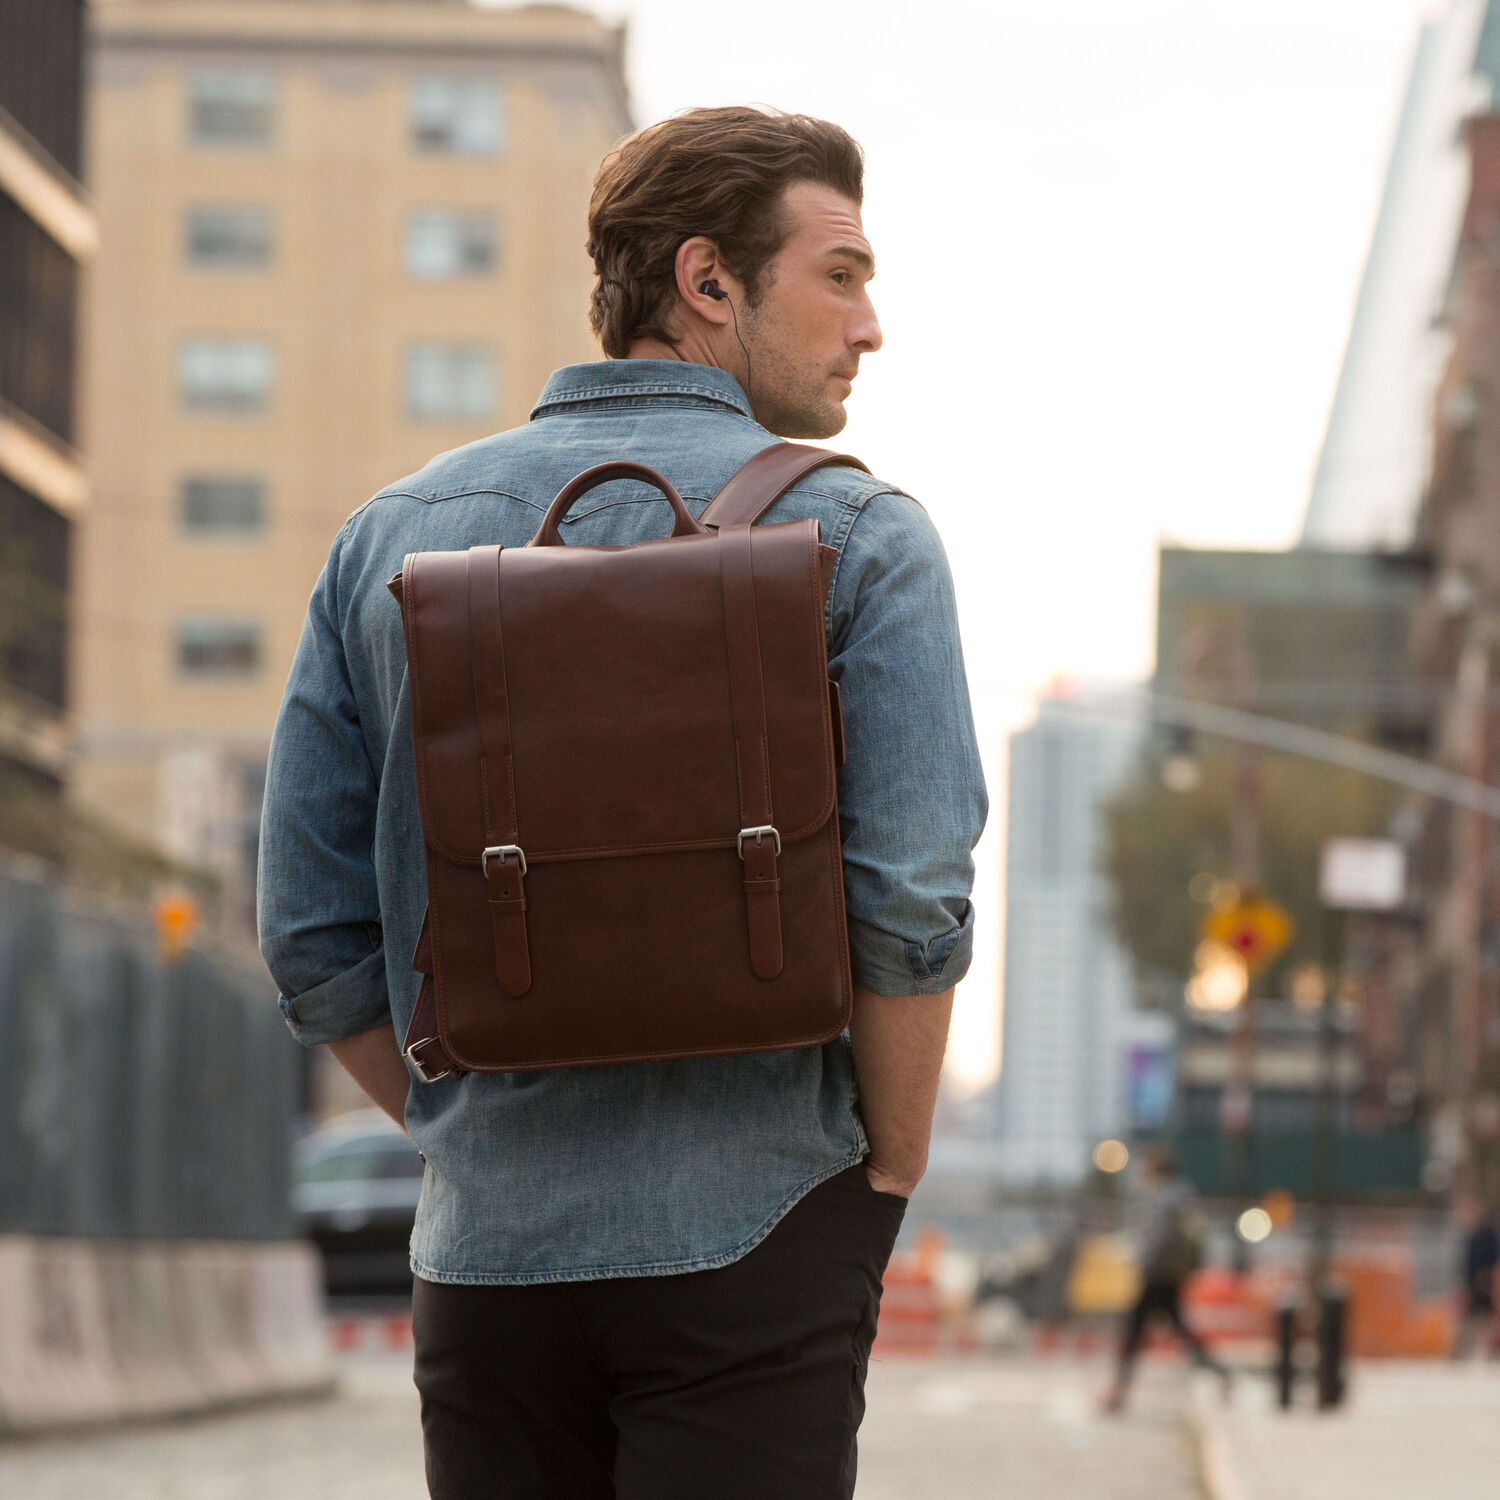 abcc448d2d Samsonite Mens Leather 1910 Heritage Backpack in the color Chestnut.